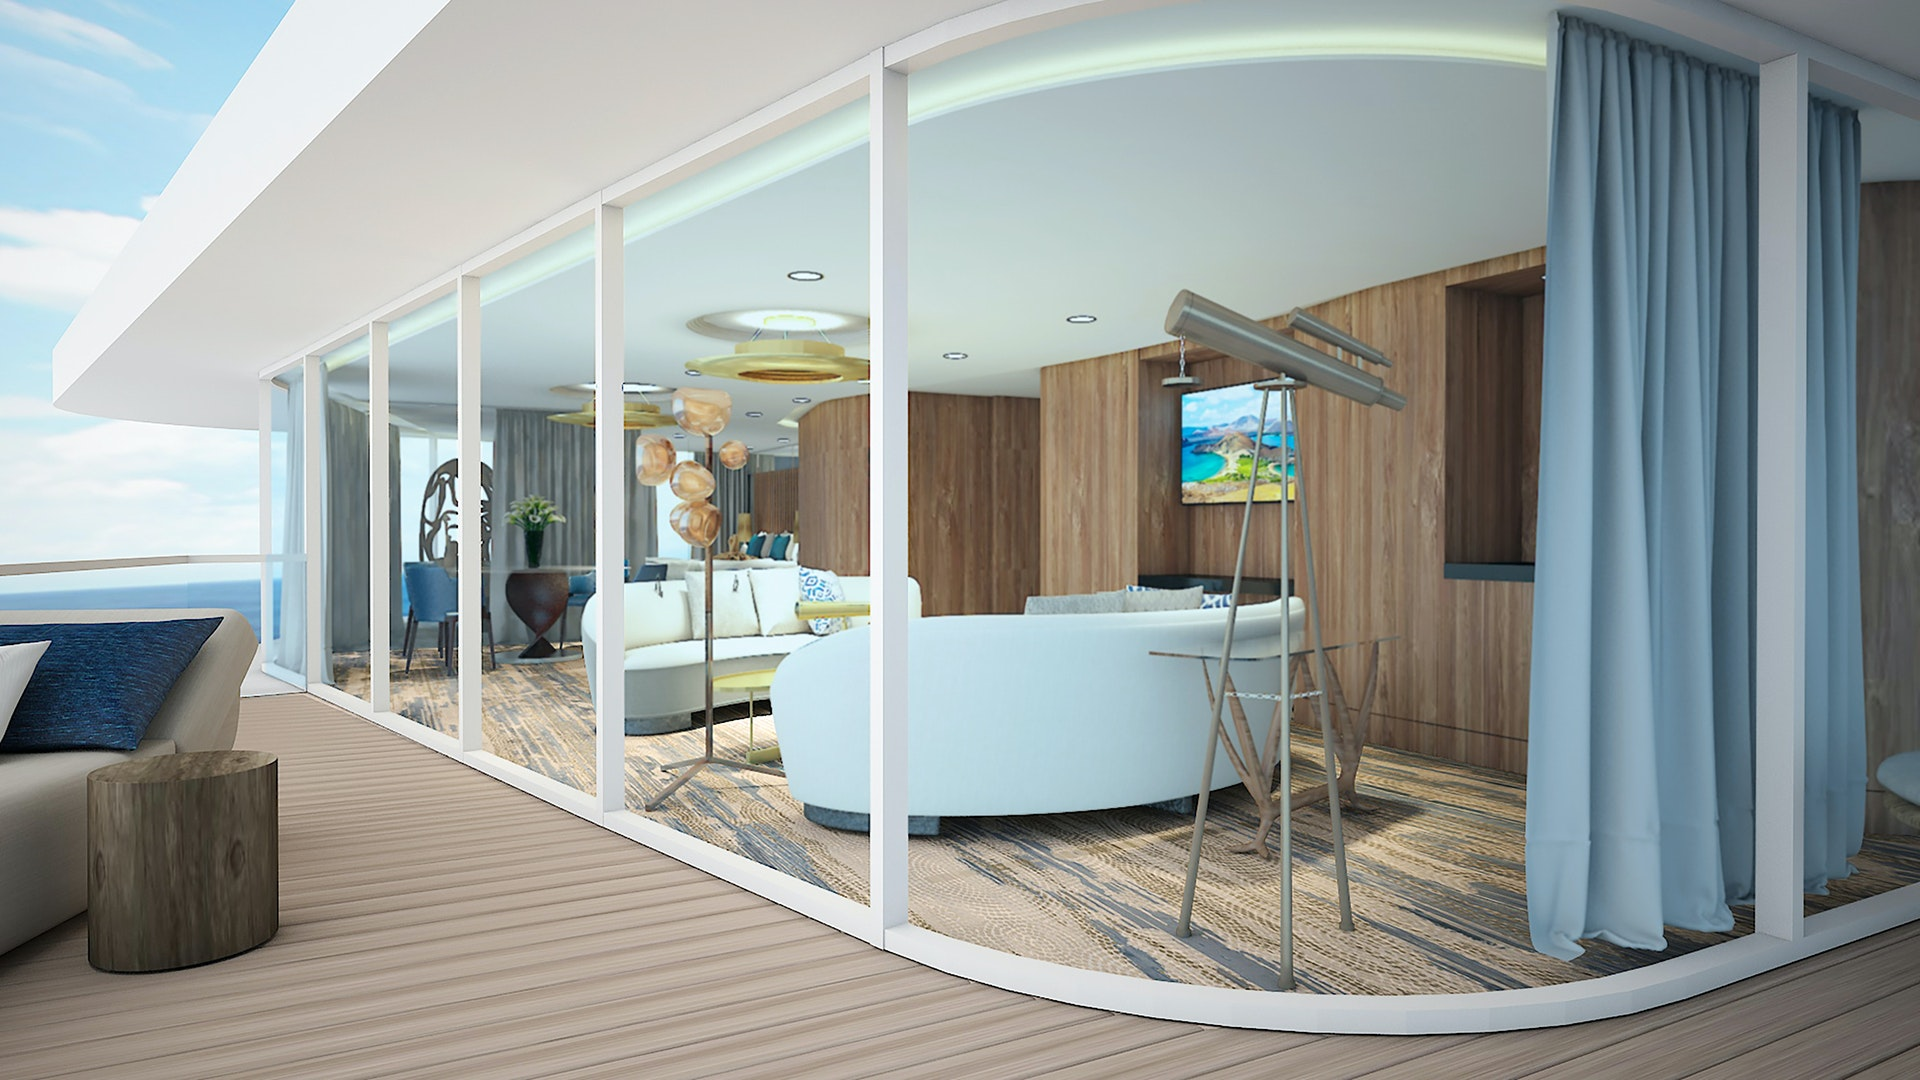 Celebrity Flora's 1,288-square-foot Penthouse Suite will be the largest in the Galápagos.